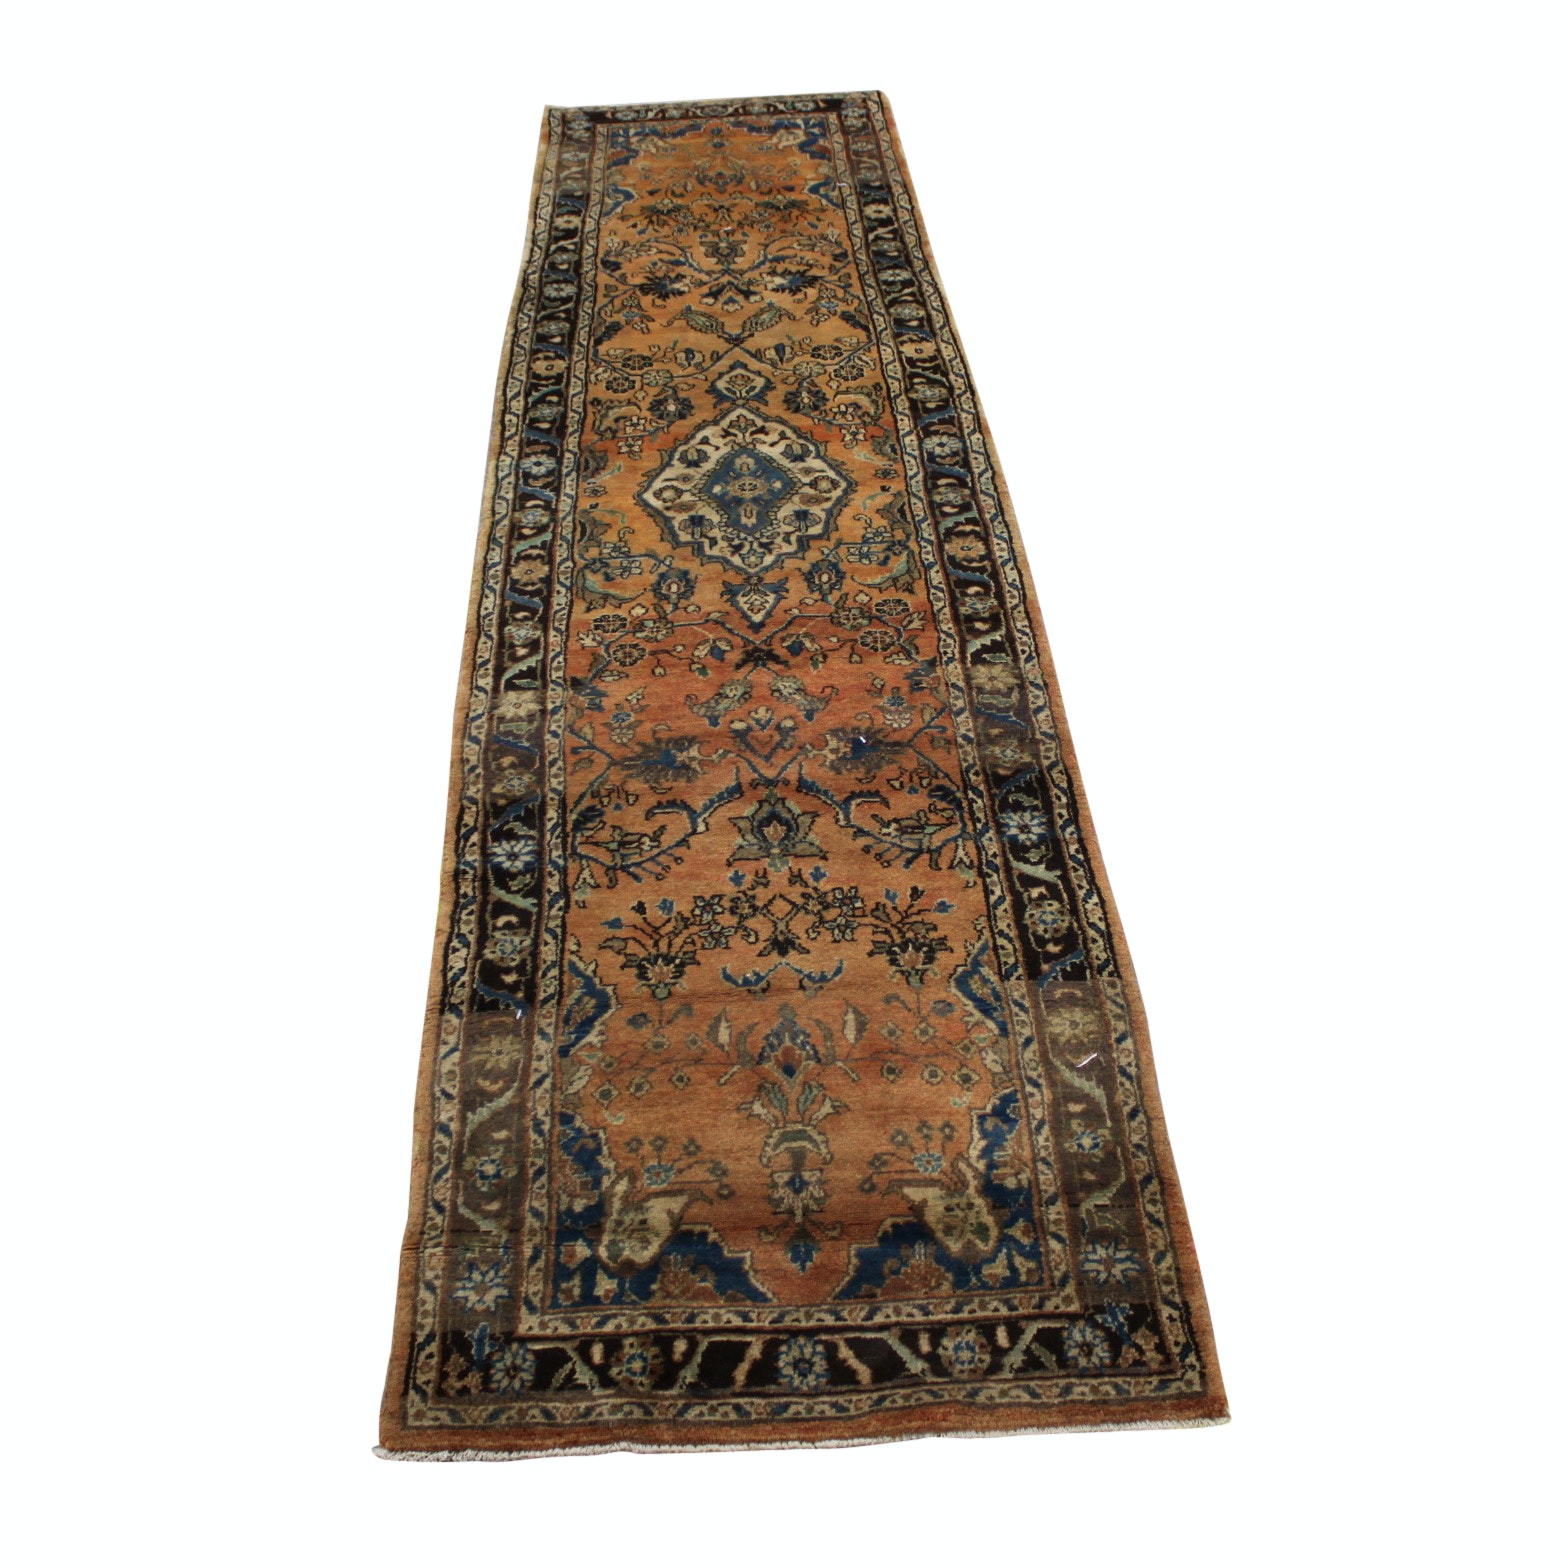 Vintage Hand-Knotted Persian Mahal Wool Carpet Runner